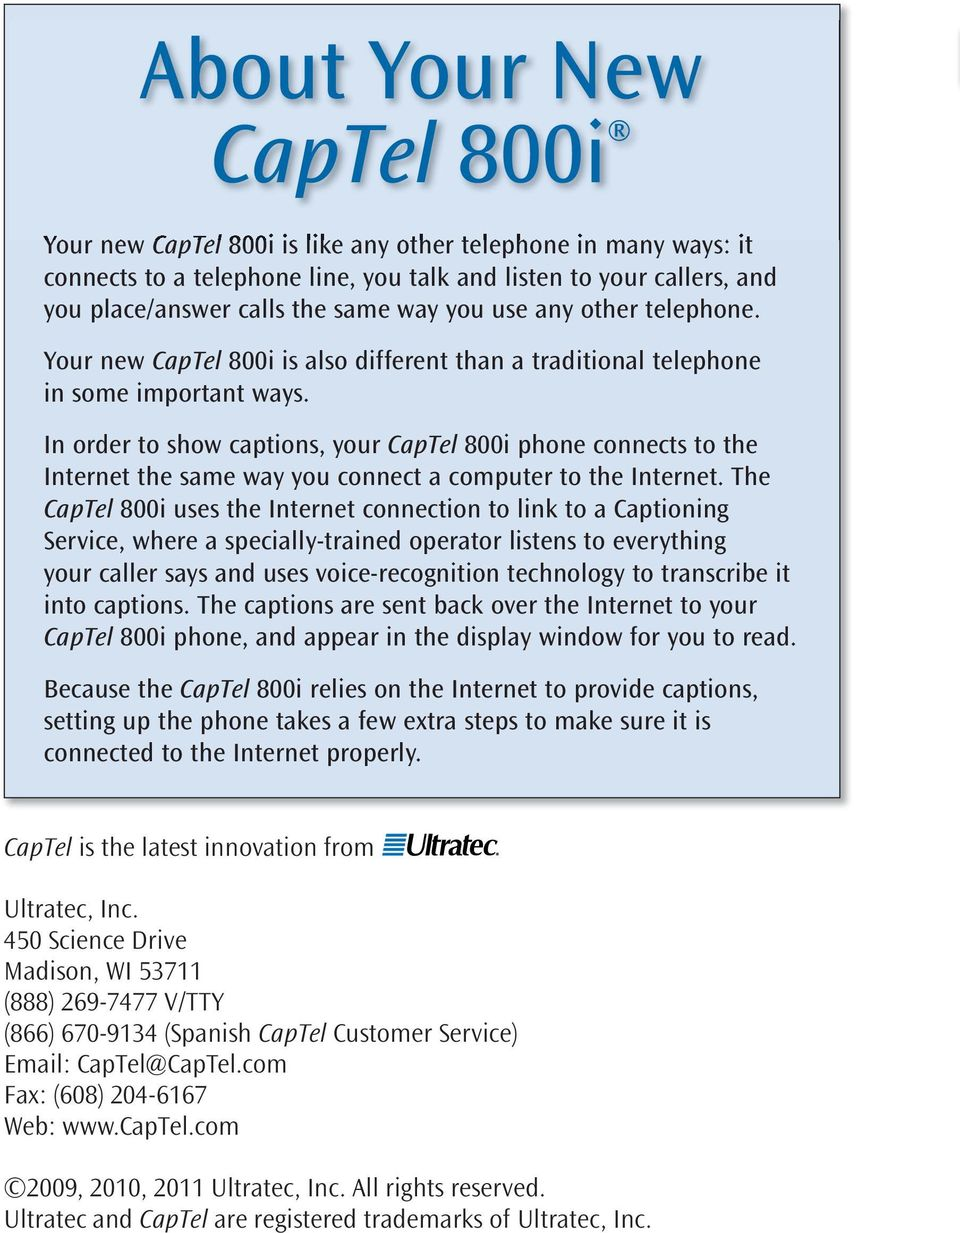 In order to show captions, your CapTel 800i phone connects to the Internet the same way you connect a computer to the Internet.